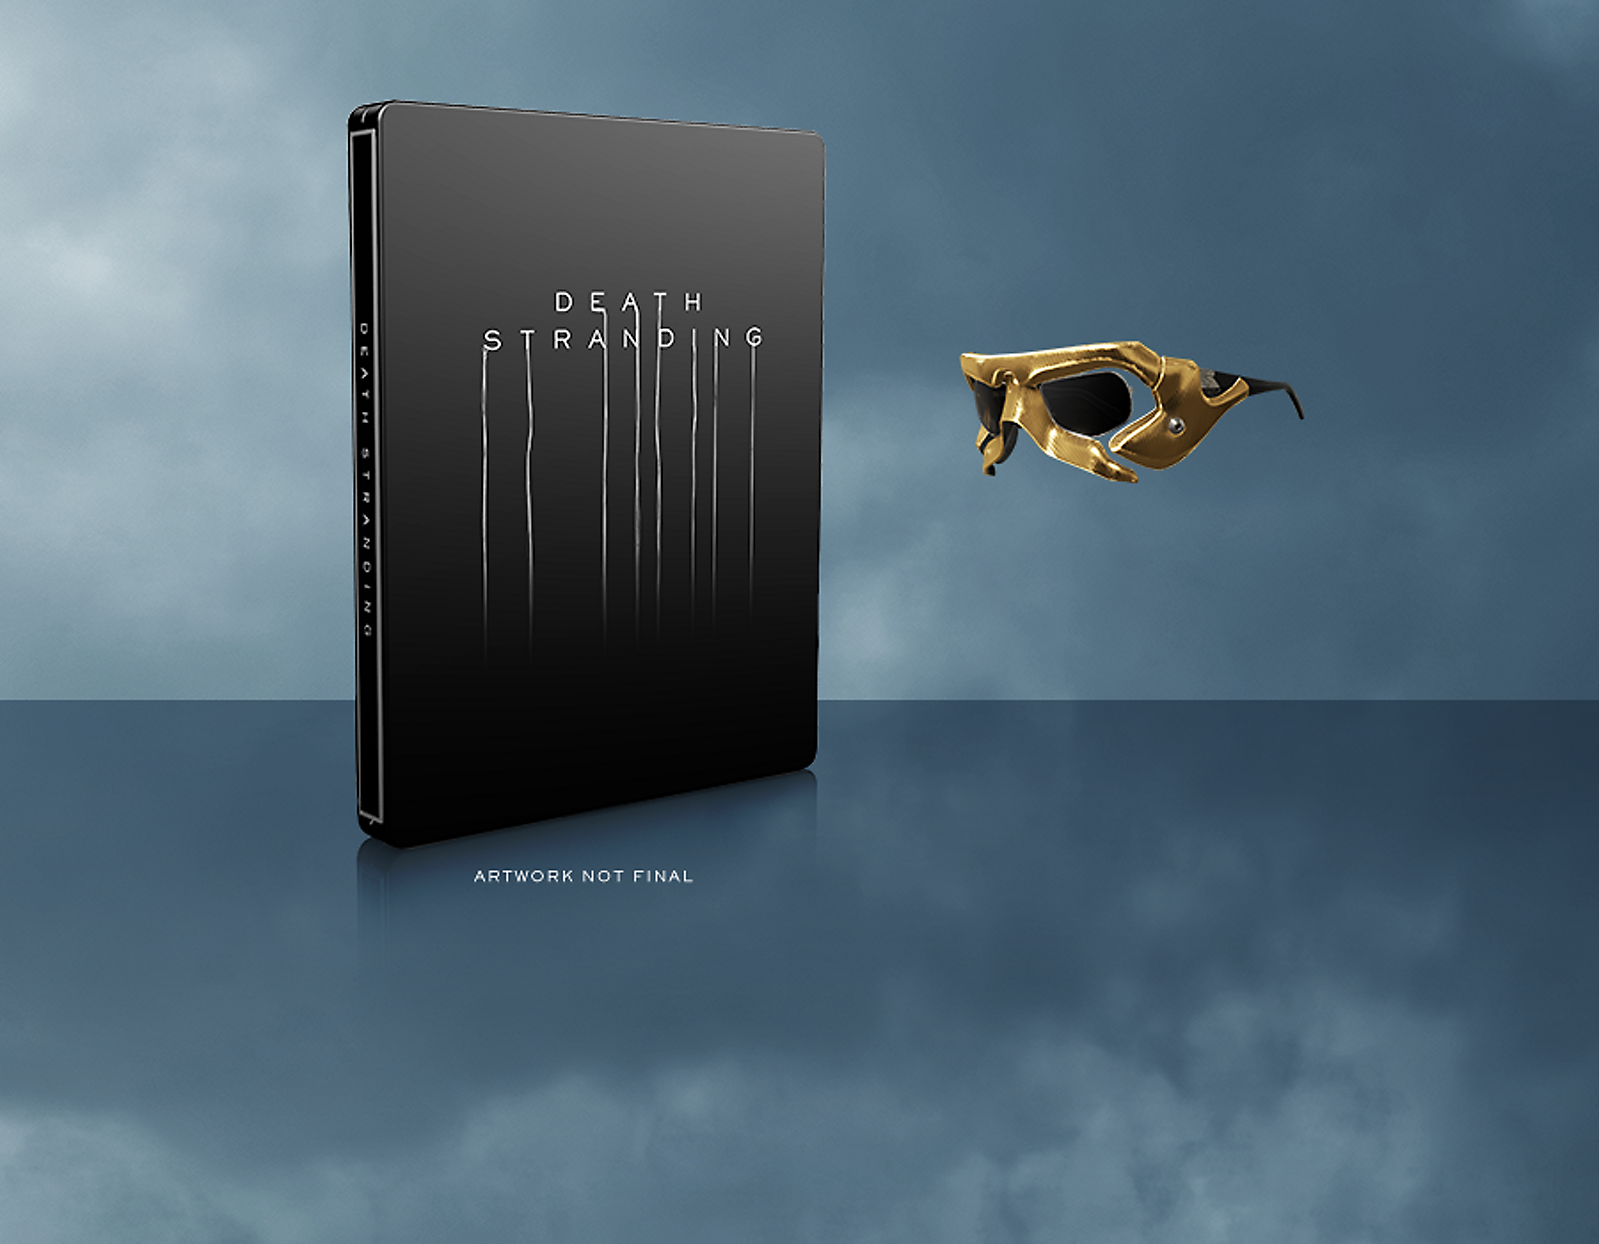 death-stranding-special-edition-contents-product-shot-01-ps4-us-16may19?$native_xl_t$